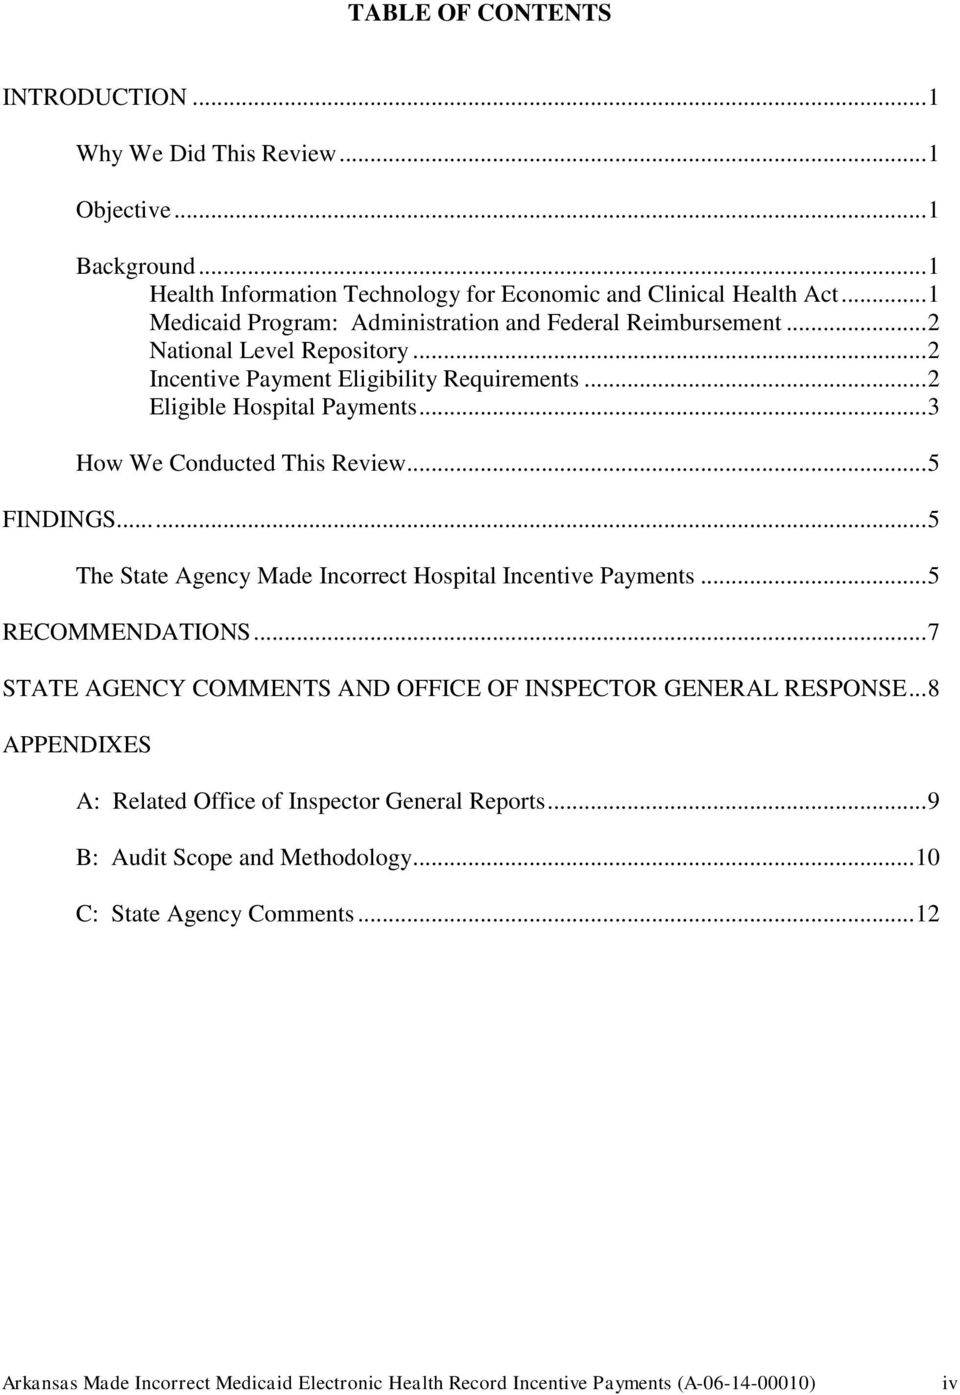 ..3 How We Conducted This Review...5 FINDINGS......5 The State Agency Made Incorrect Hospital Incentive Payments...5 RECOMMENDATIONS.